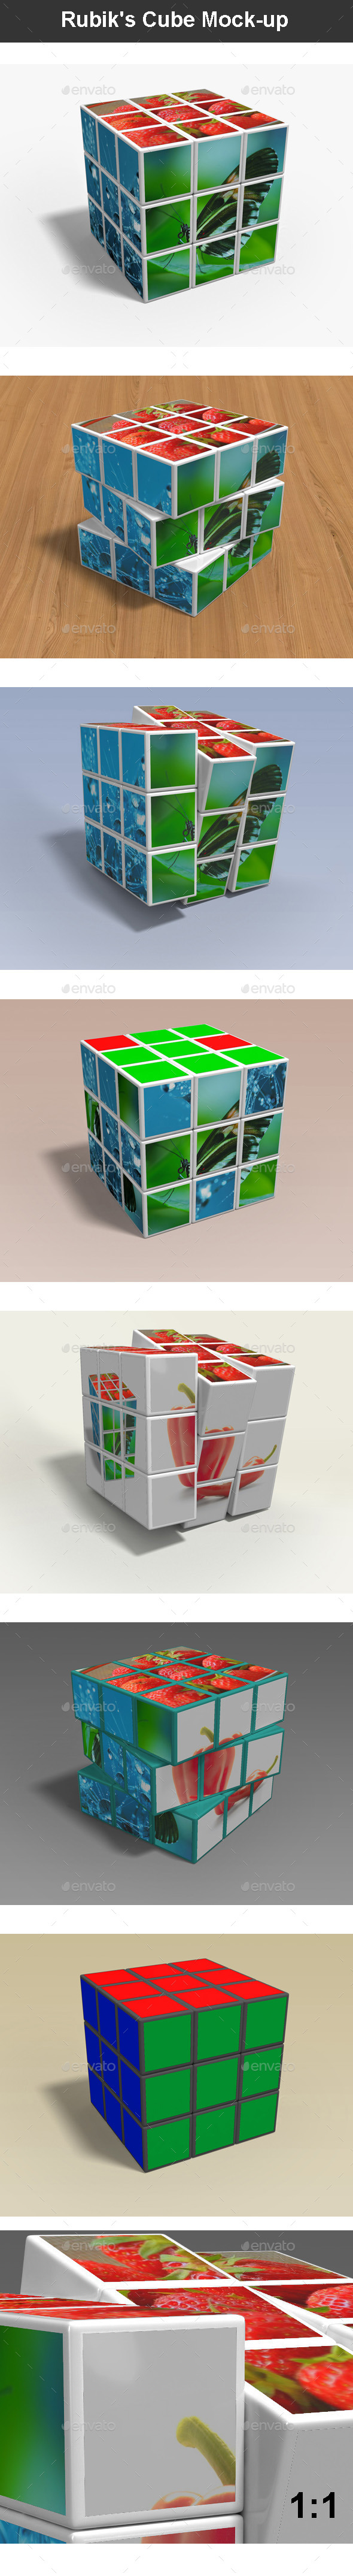 Rubik's Cube Mock-up